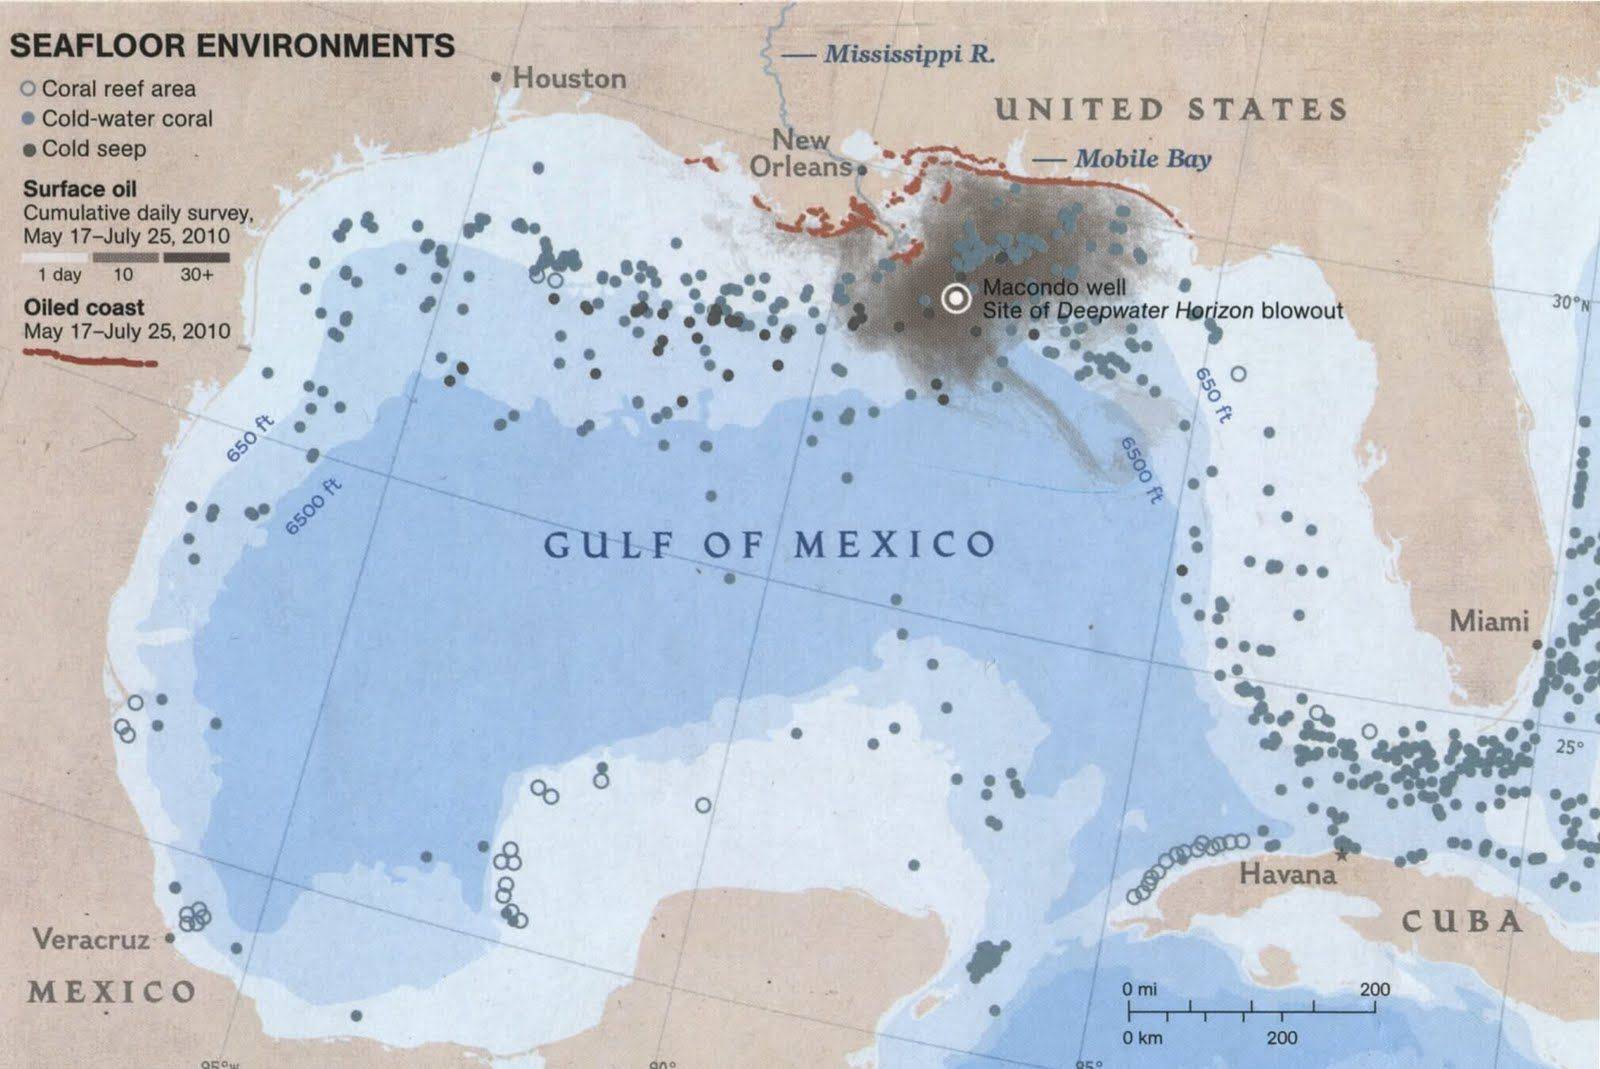 Oil Rigs In Gulf Of Mexico Map.Texas Gulf Oil Rig Map Gulf Oil Spill Map Texas Tea